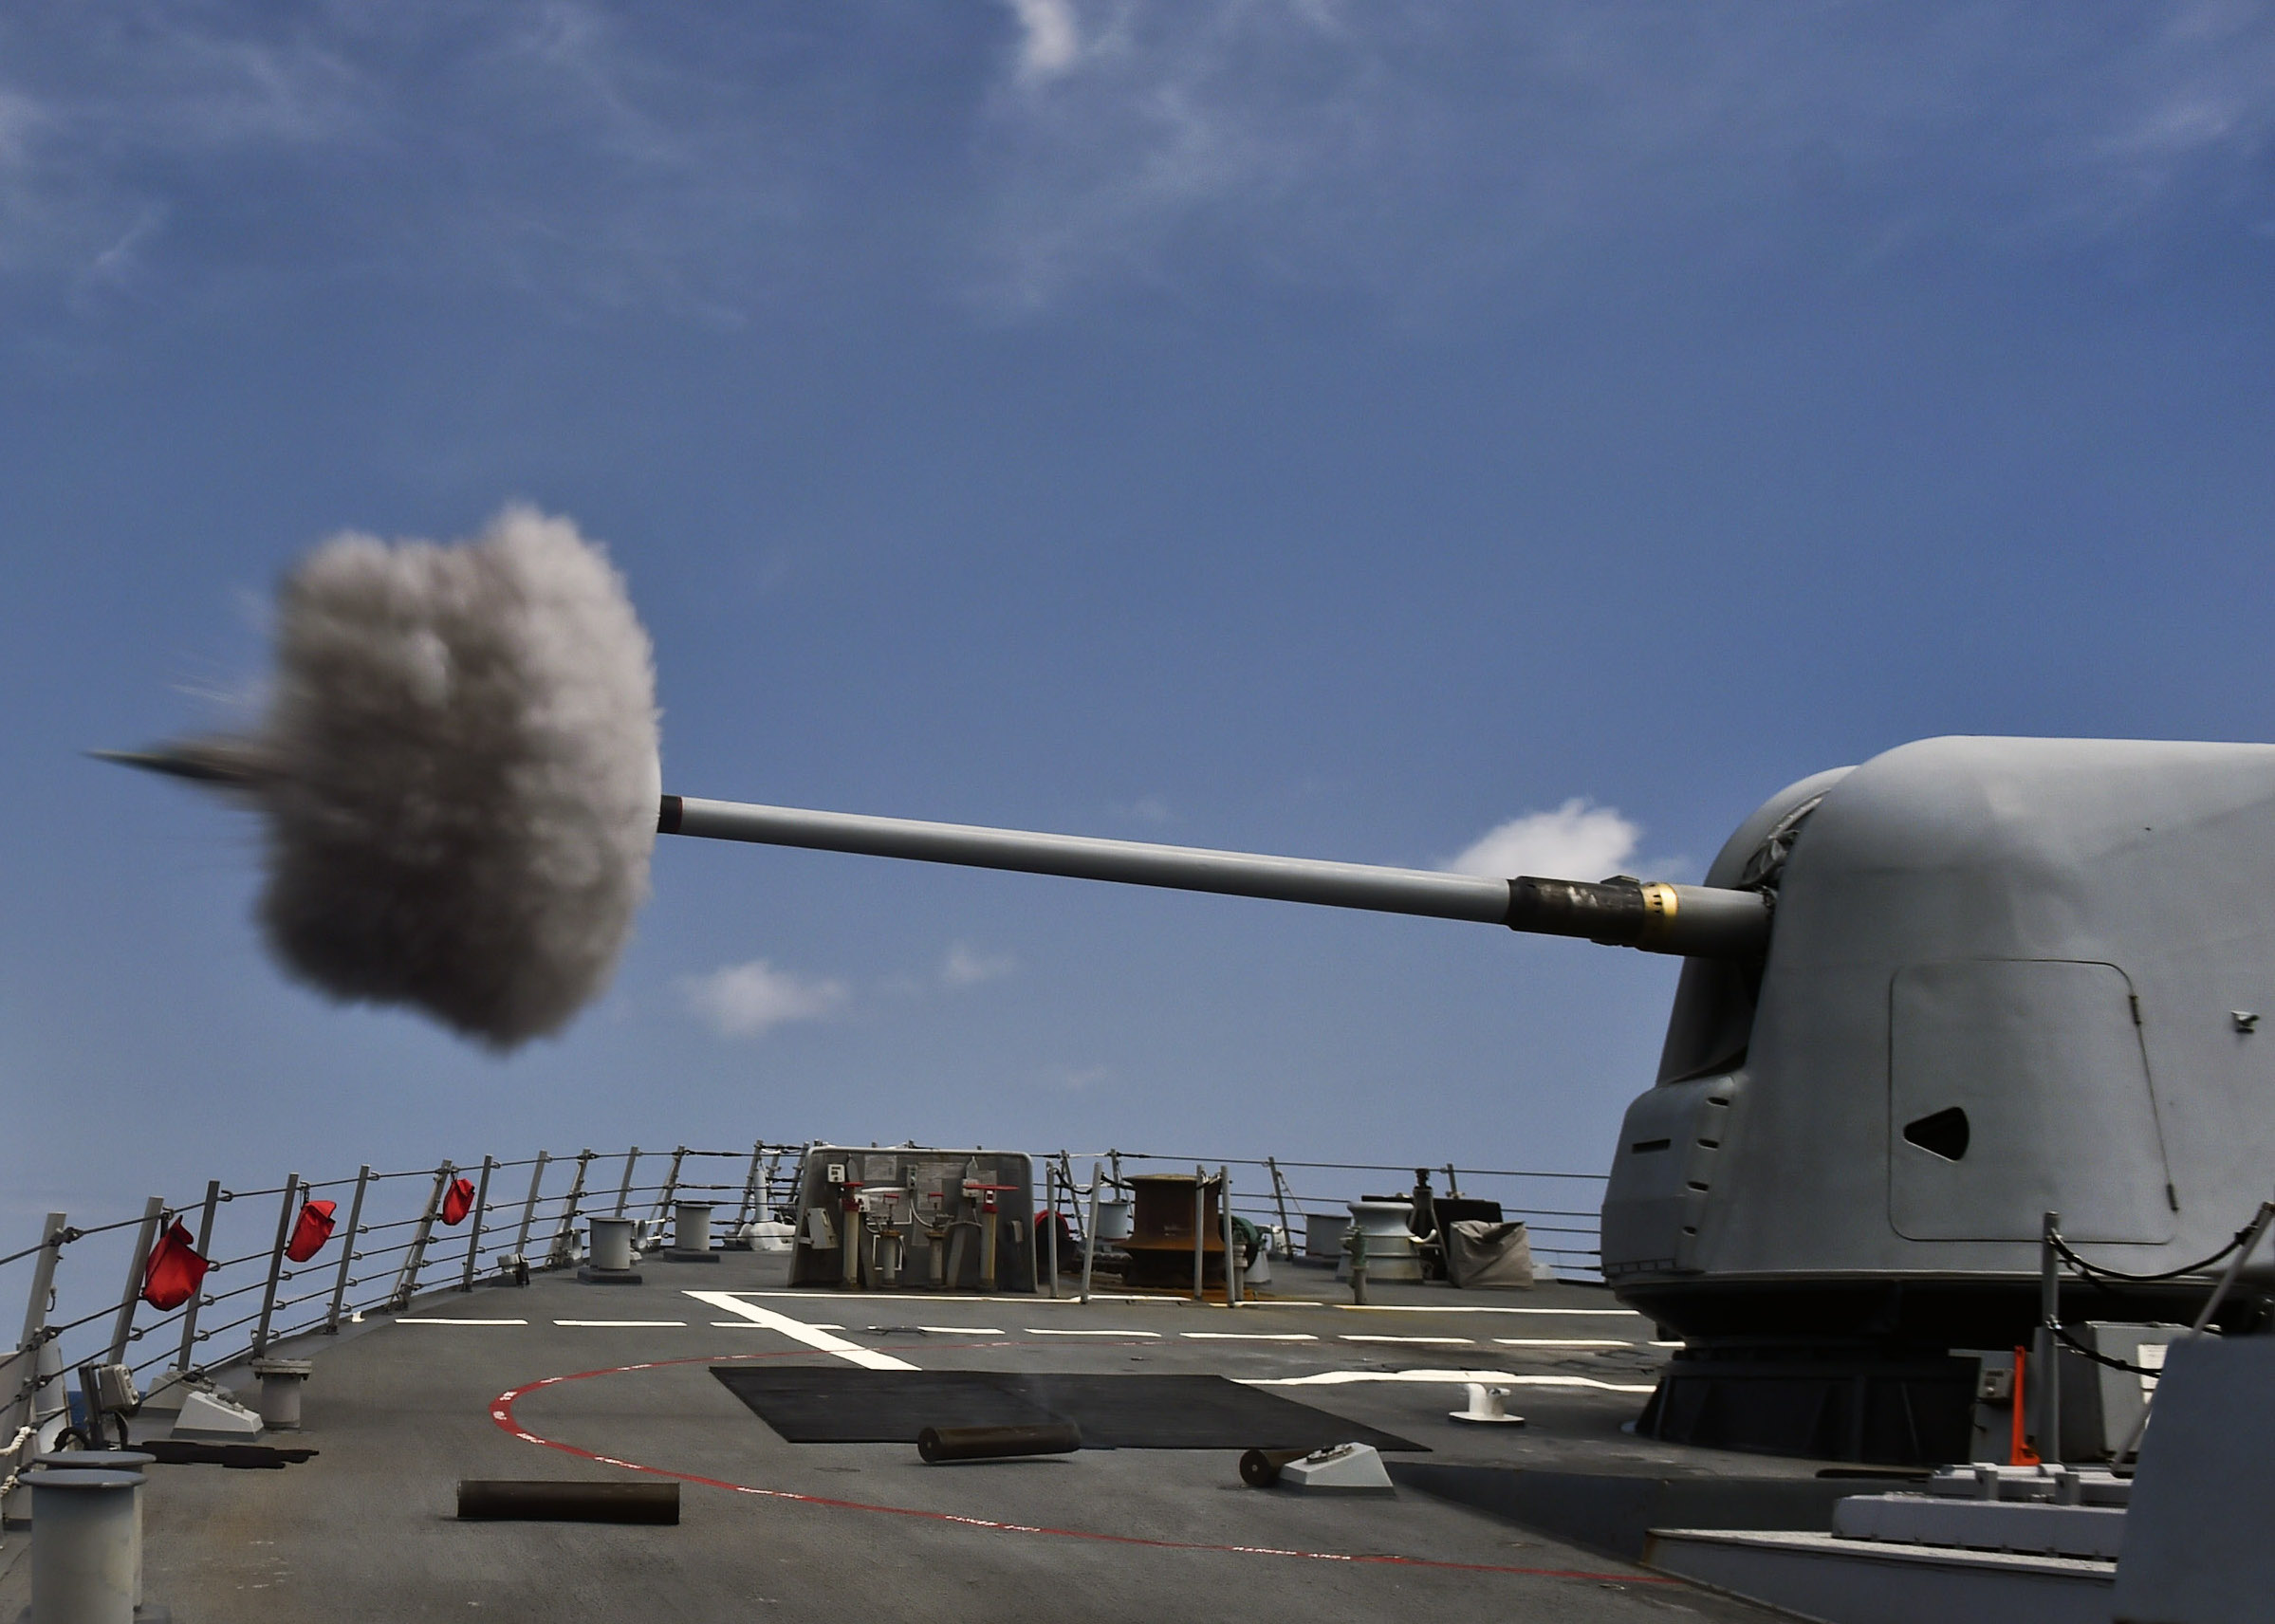 essay taking distributed lethality to the next level usni news uss porter ddg 78 fires its mk 45 5 inch lightweight gun